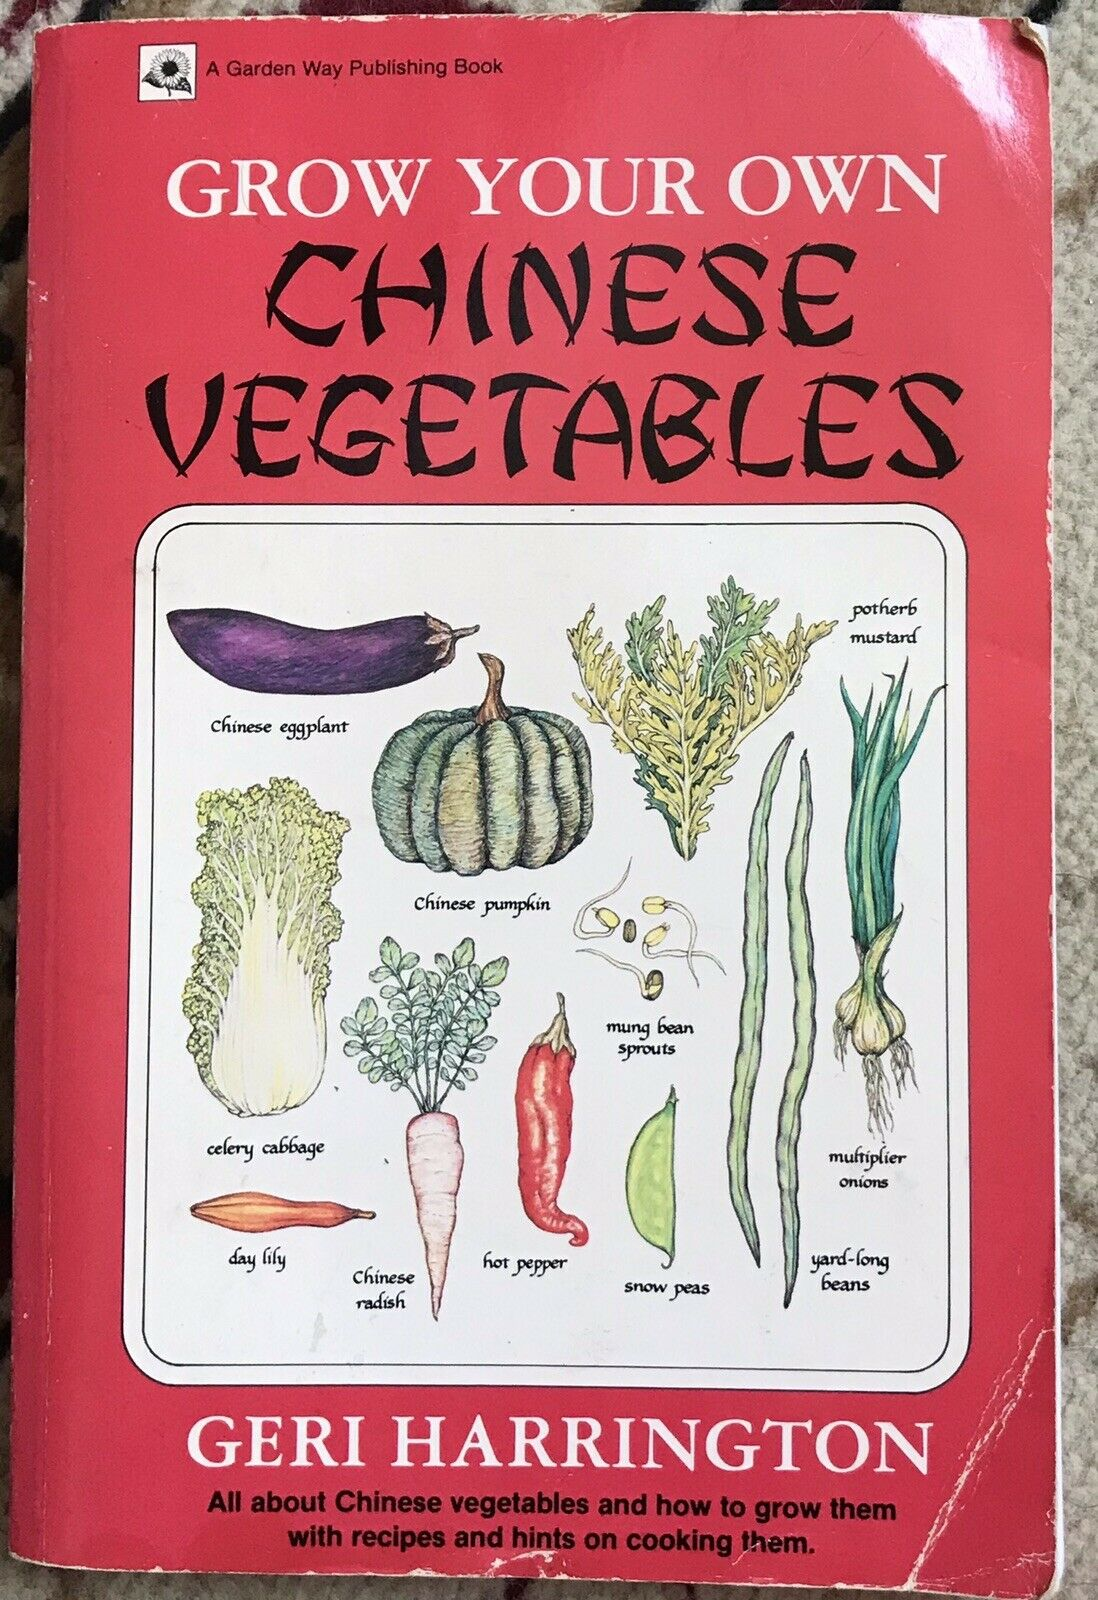 GROW YOUR OWN CHINESE VEGETABLES CONTAINER GARDENING COOKBOOK |